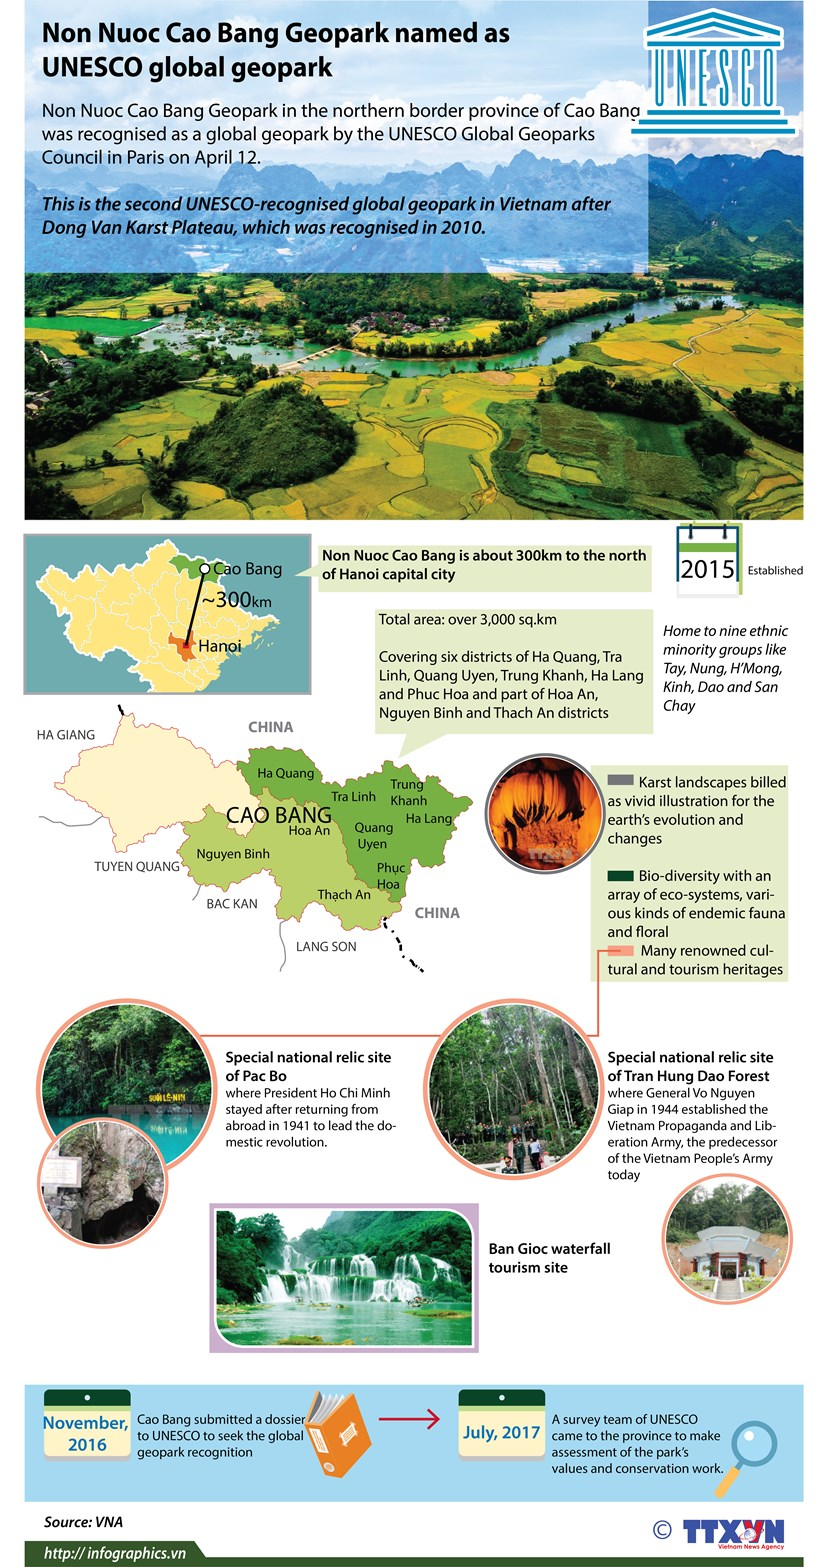 Non Nuoc Cao Bang Geopark named as UNESCO global geopark hinh anh 1